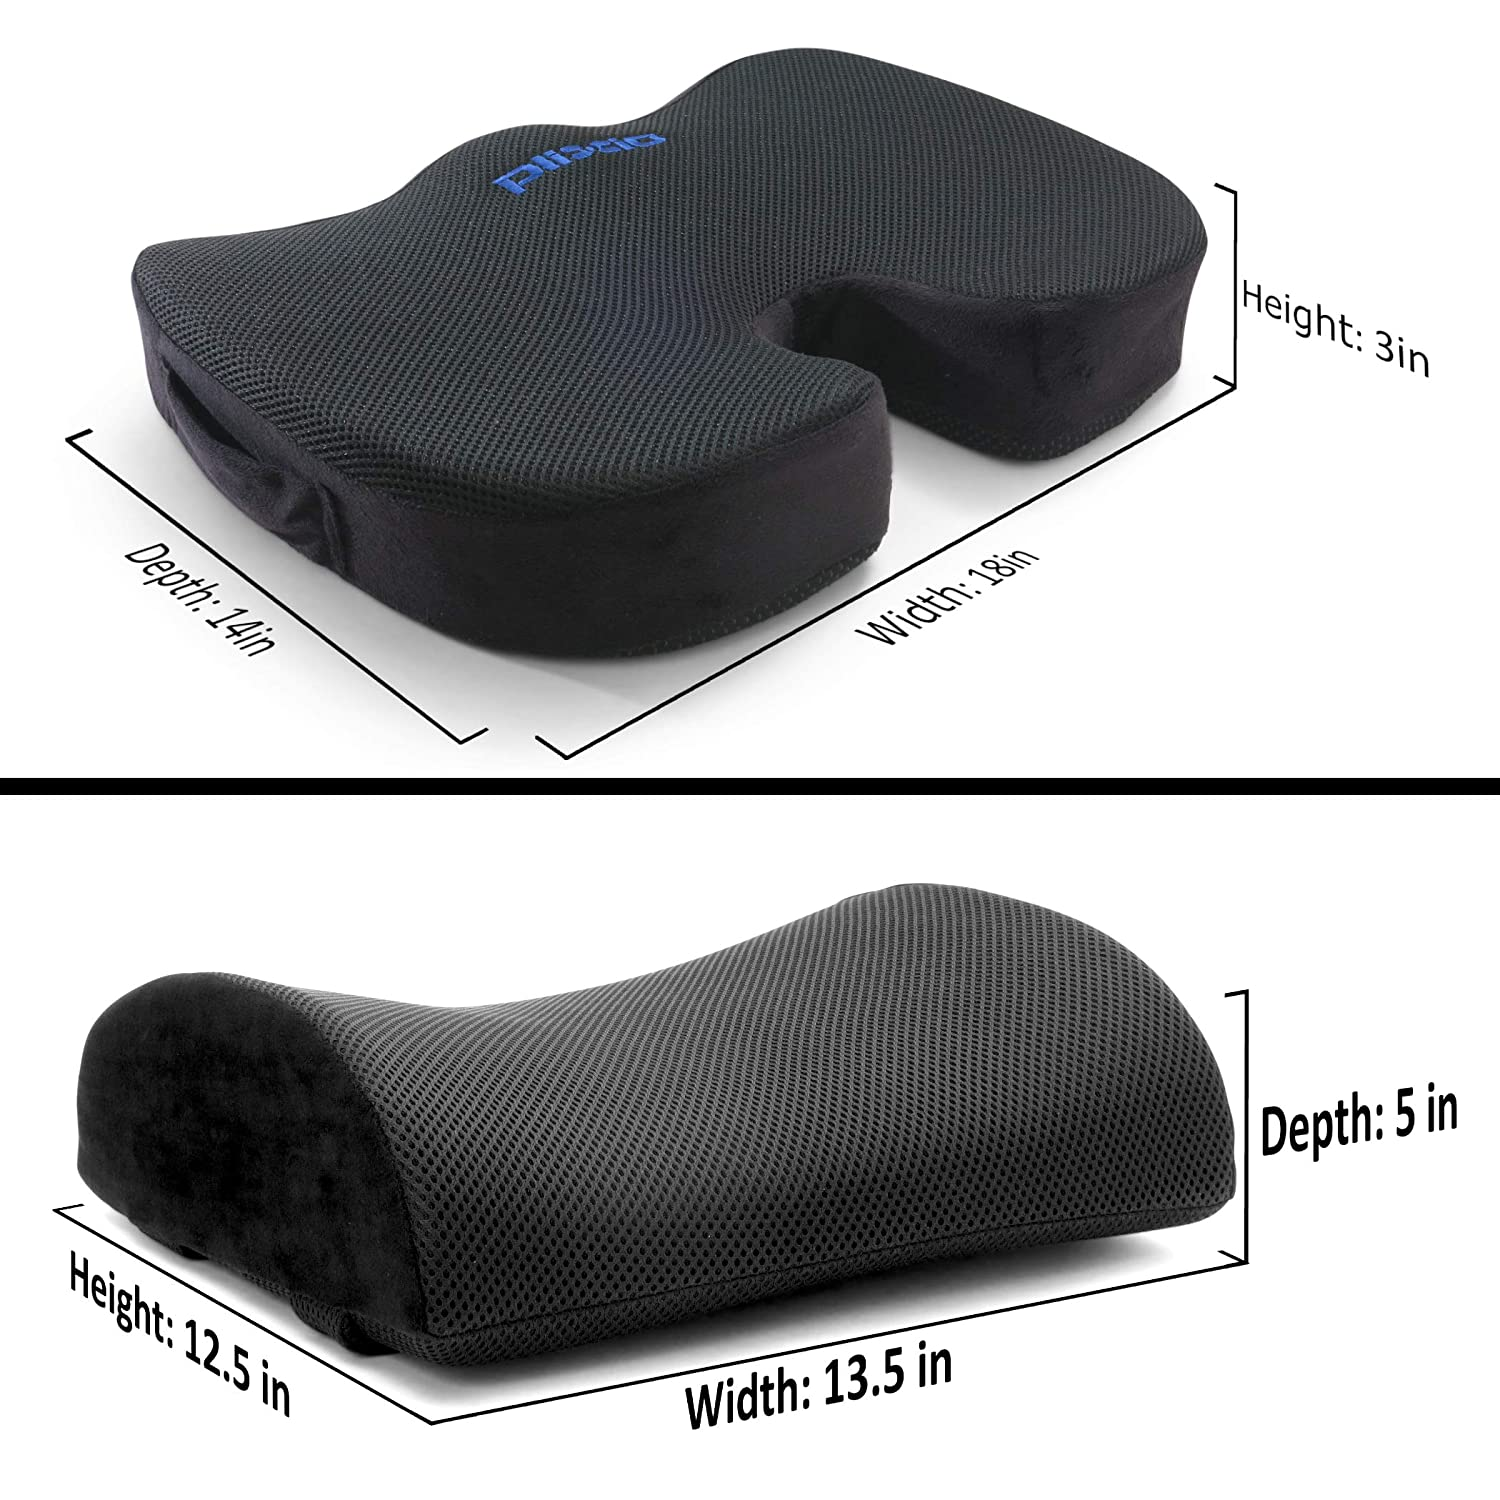 Orthopedic Chair Pad for Support in Office Desk Chair and Car Seat Coccyx Plixio Memory Foam Seat Cushion and Lumbar Back Support Pillow- Chair Pillow for Sciatica Back /& Tailbone Pain Relief